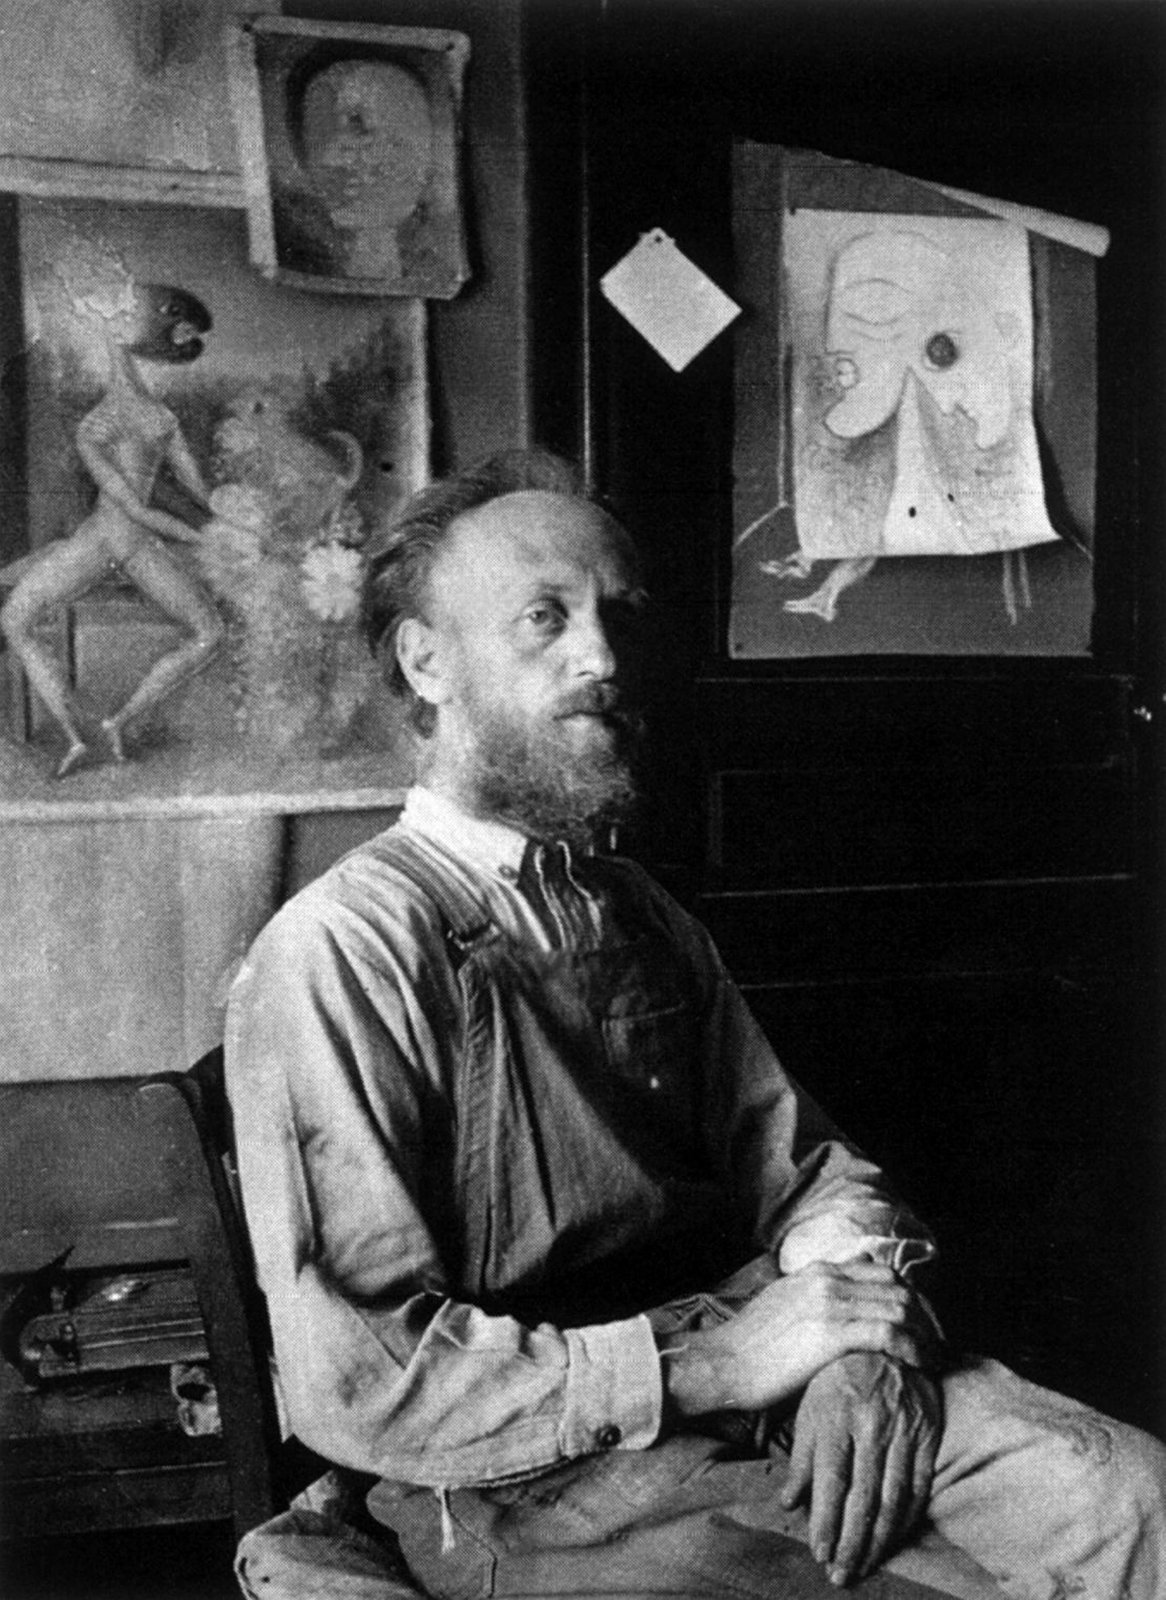 Victor Brauner, 1940, Unknown photographer, Gellu Naum Foundation, Copyright Not Evaluated